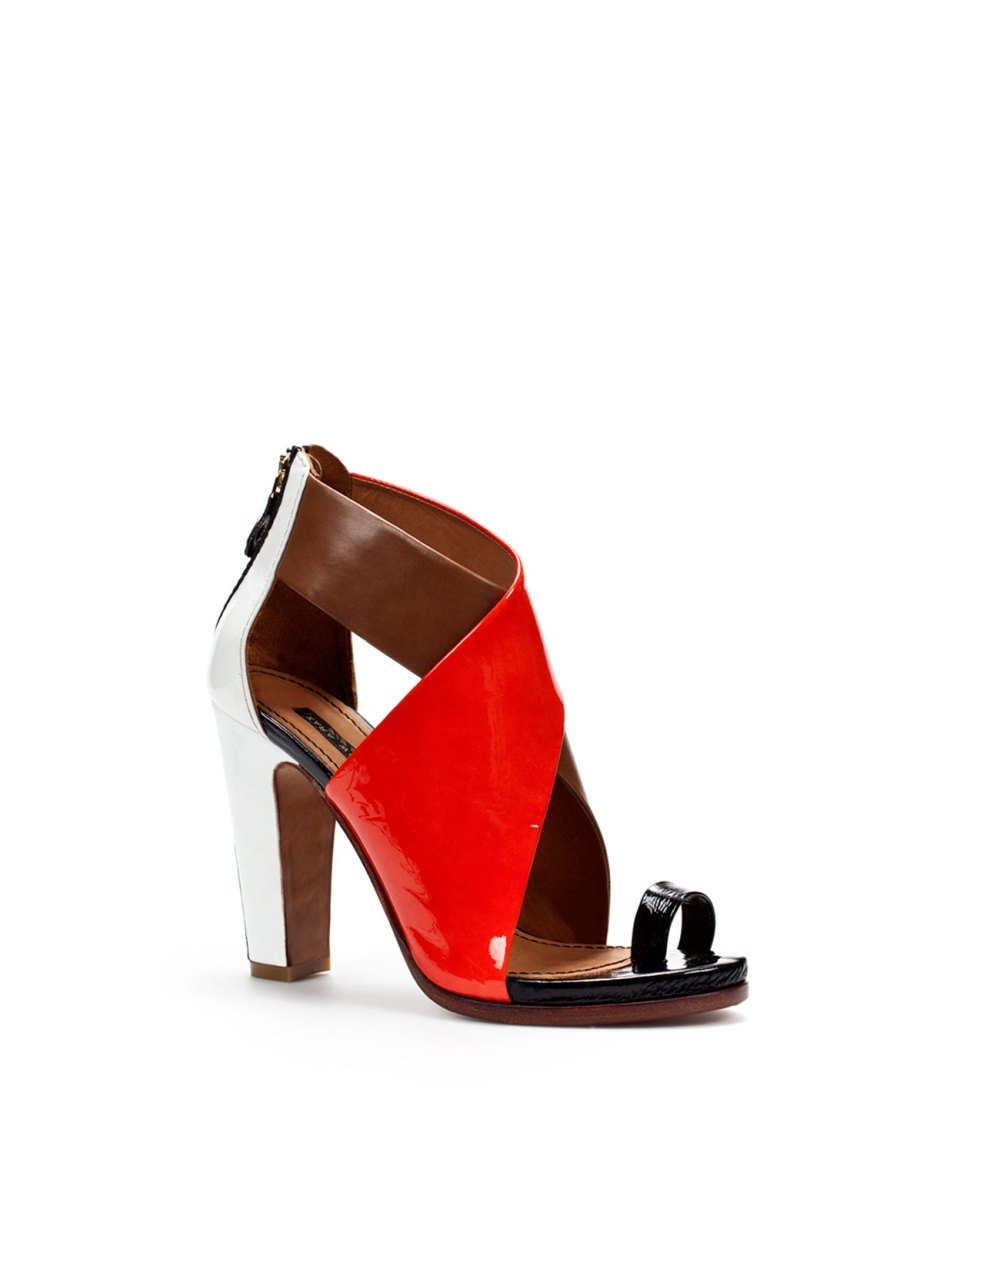 Beautiful red Sandals from Zara